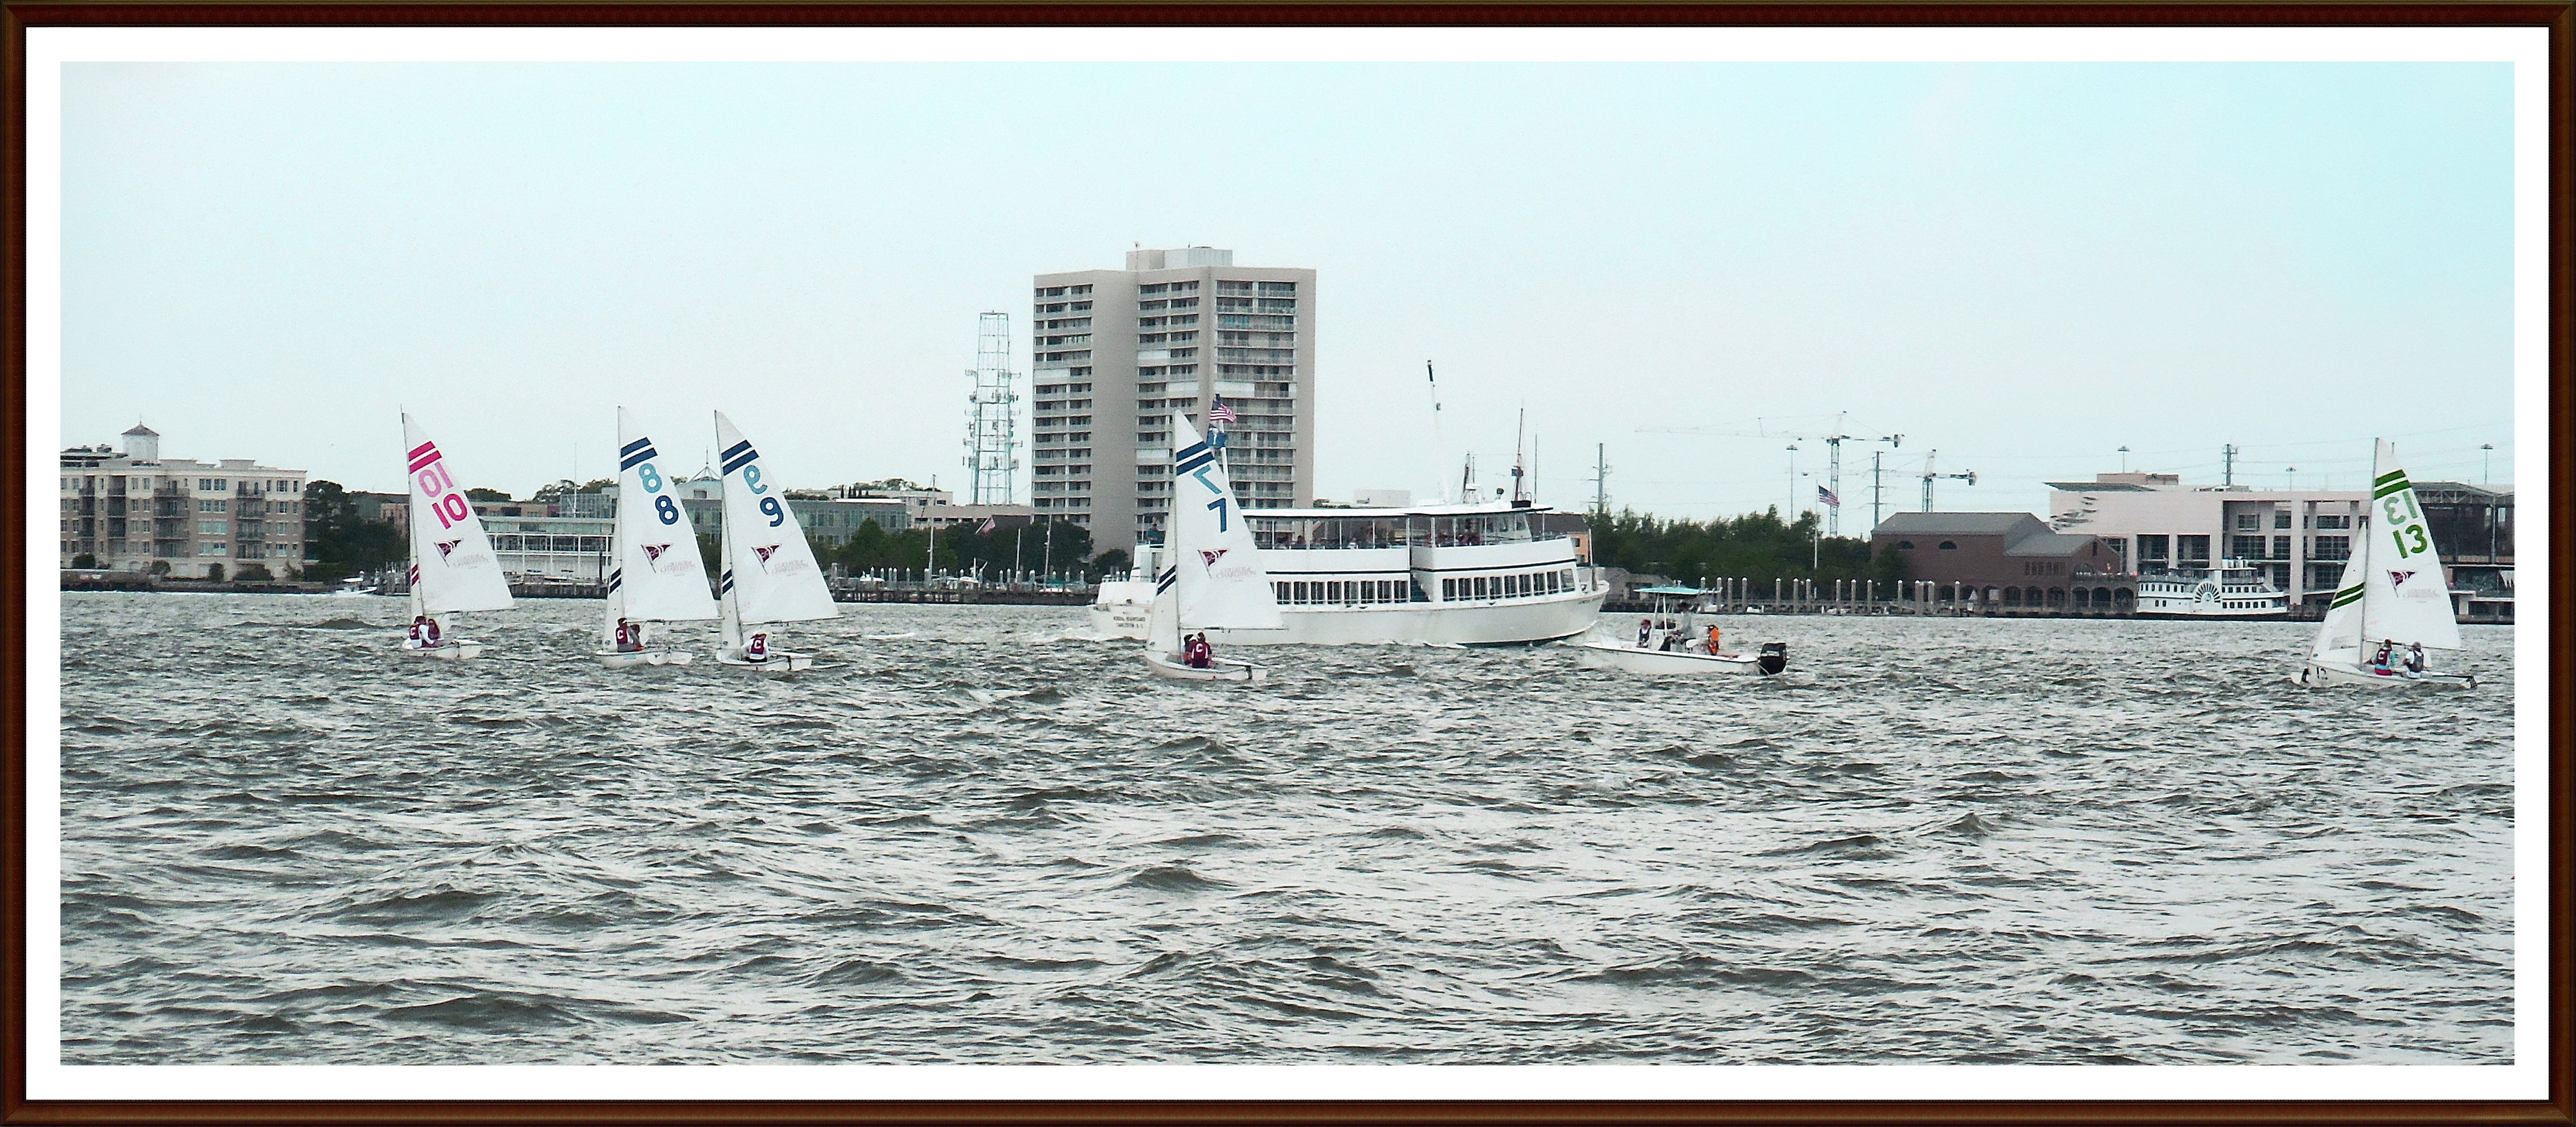 Look at the sailboat on the right...